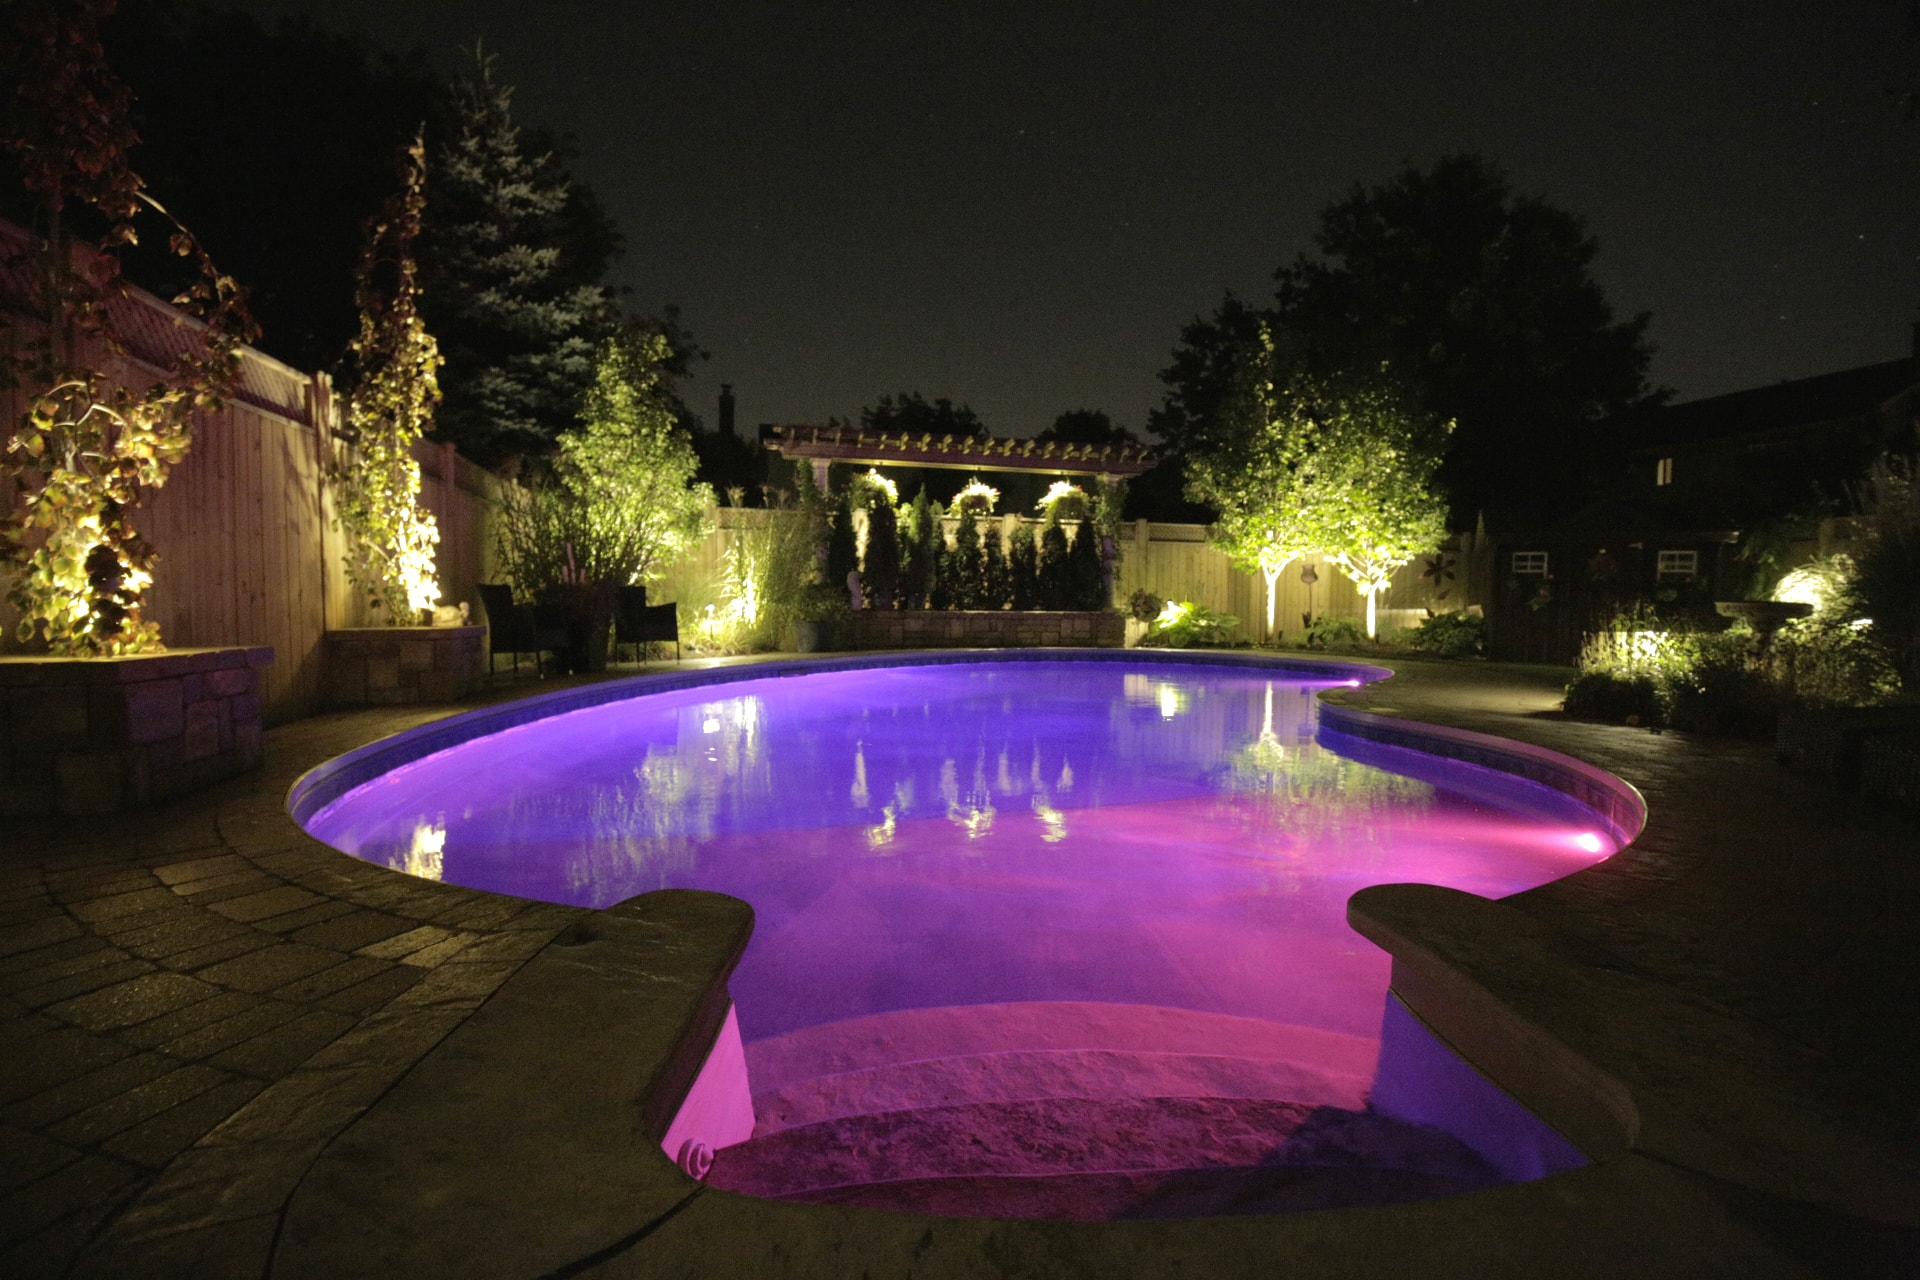 south of pool swimming nz image lights africa design deboto led advantage lighting the home